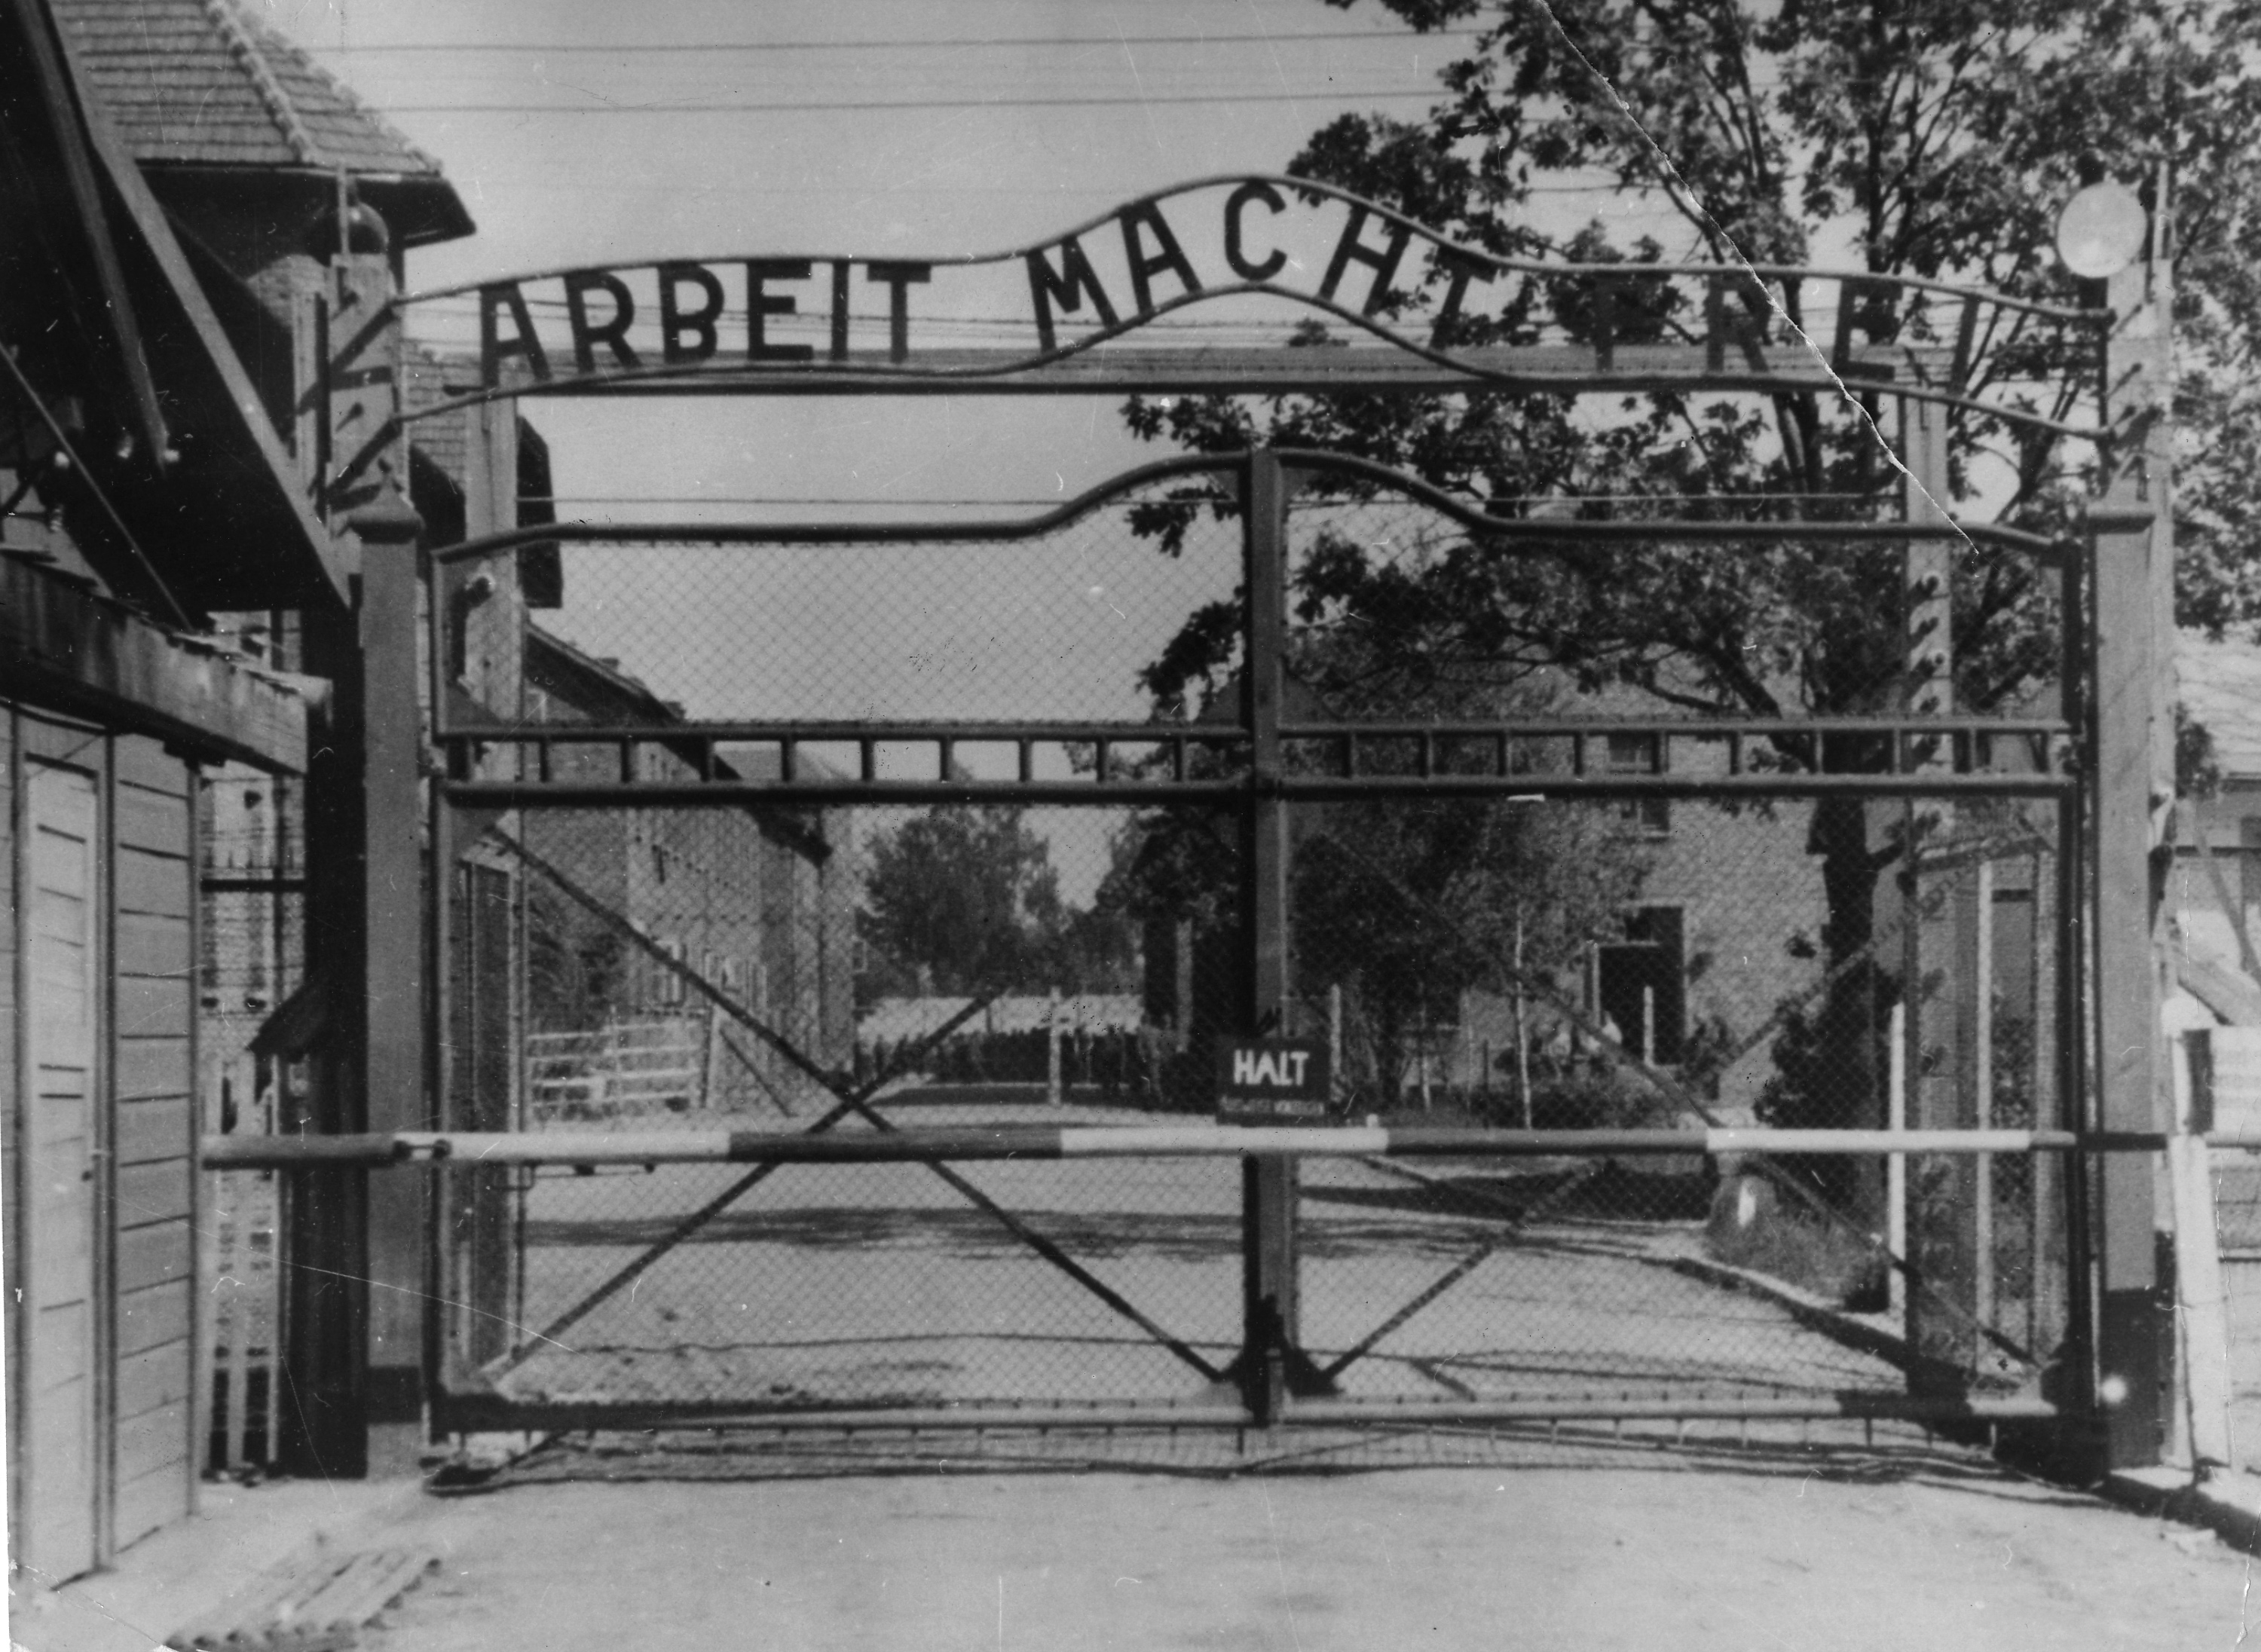 Nazi war crimes suspect dies before facing justice